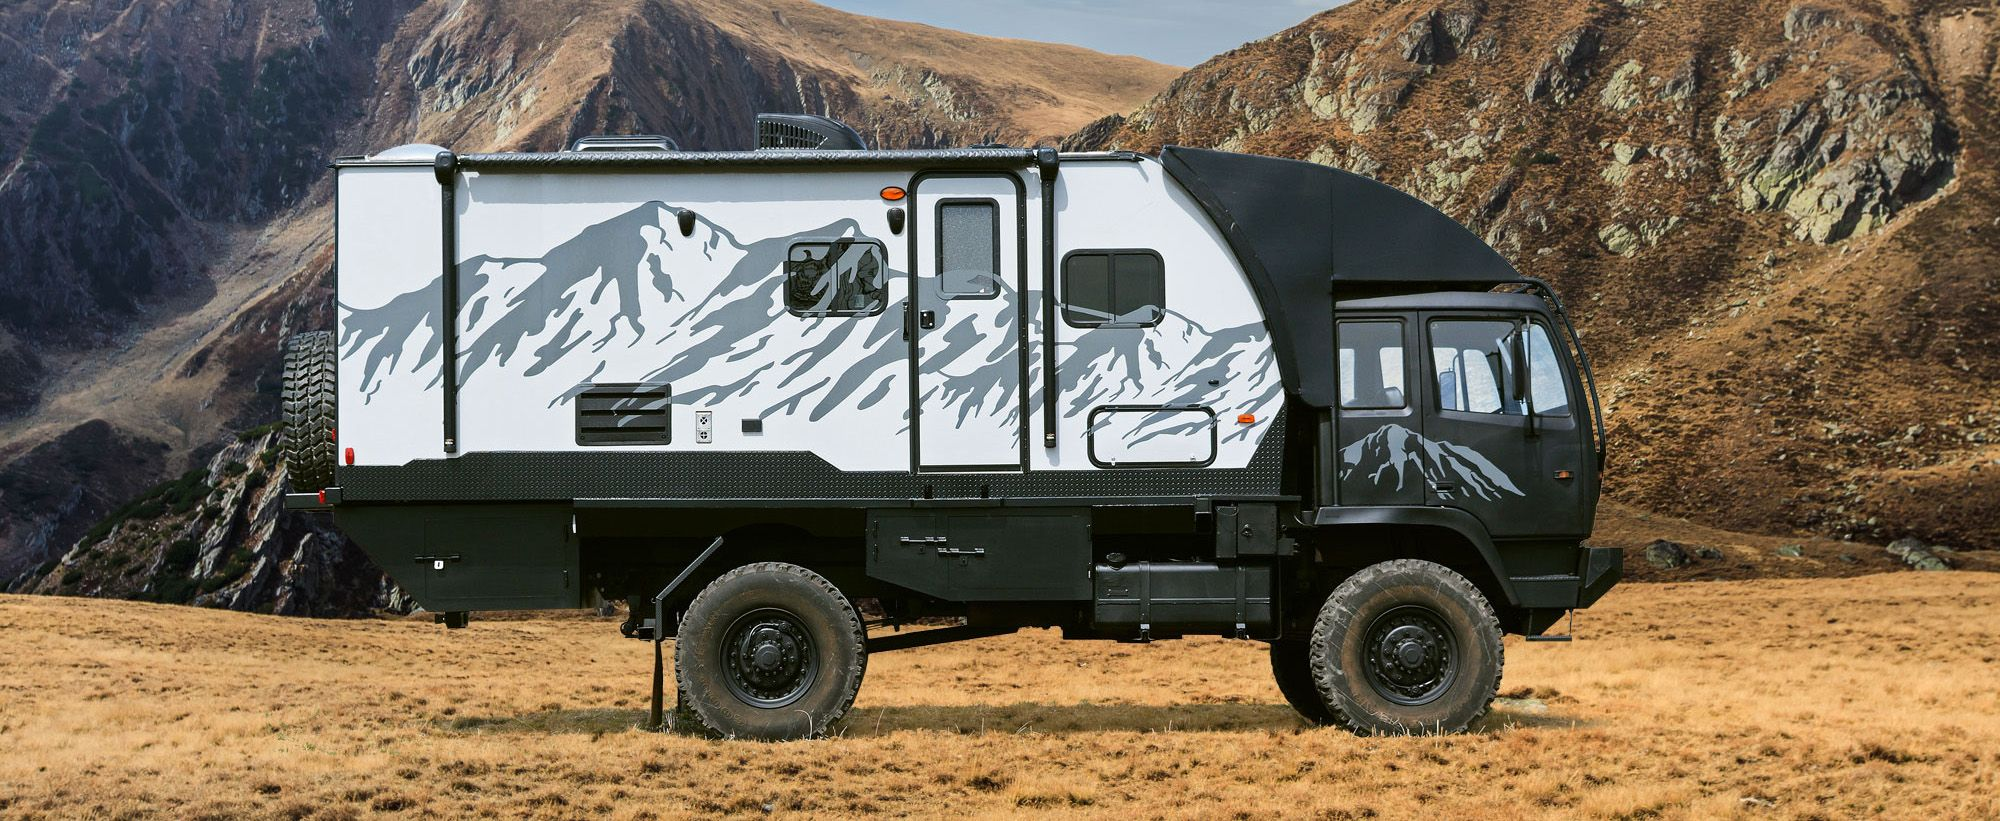 Hunter RMV  Expedition vehicle, Off road rv, Offroad